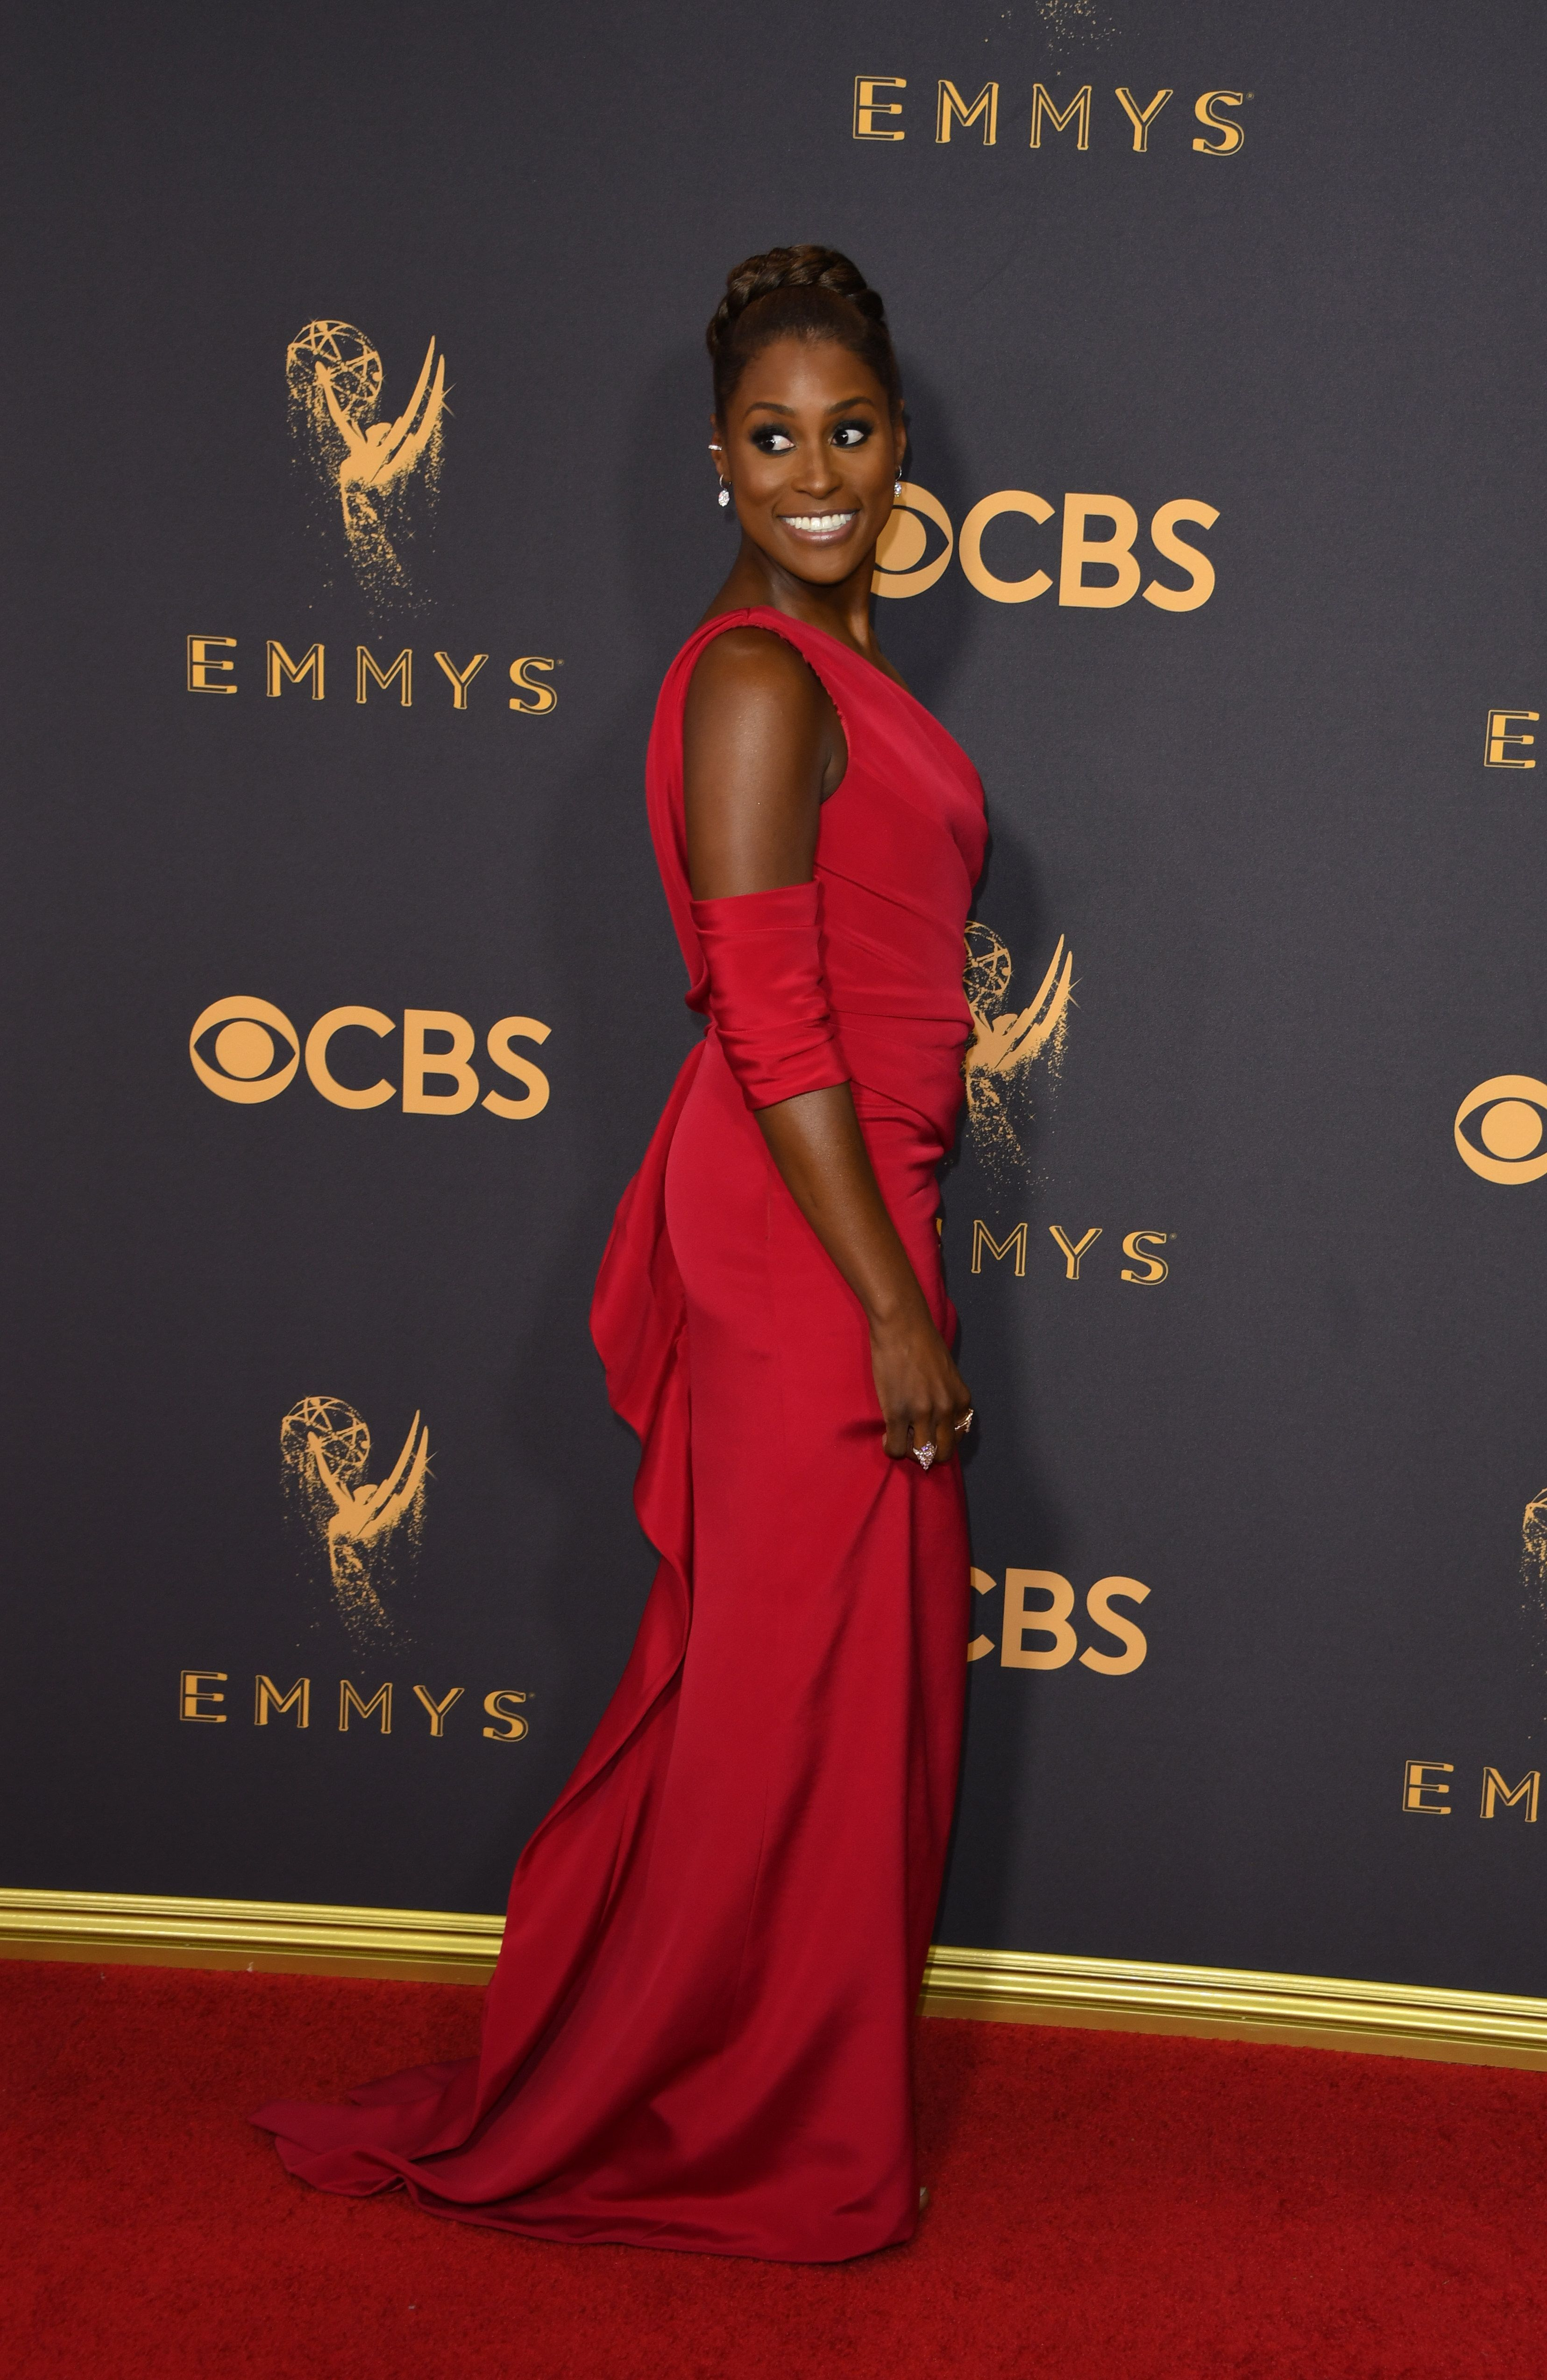 Actress Issa Rae arrives for the 69th Emmy Awards at the Microsoft Theatre on September 17, 2017 in Los Angeles, California.